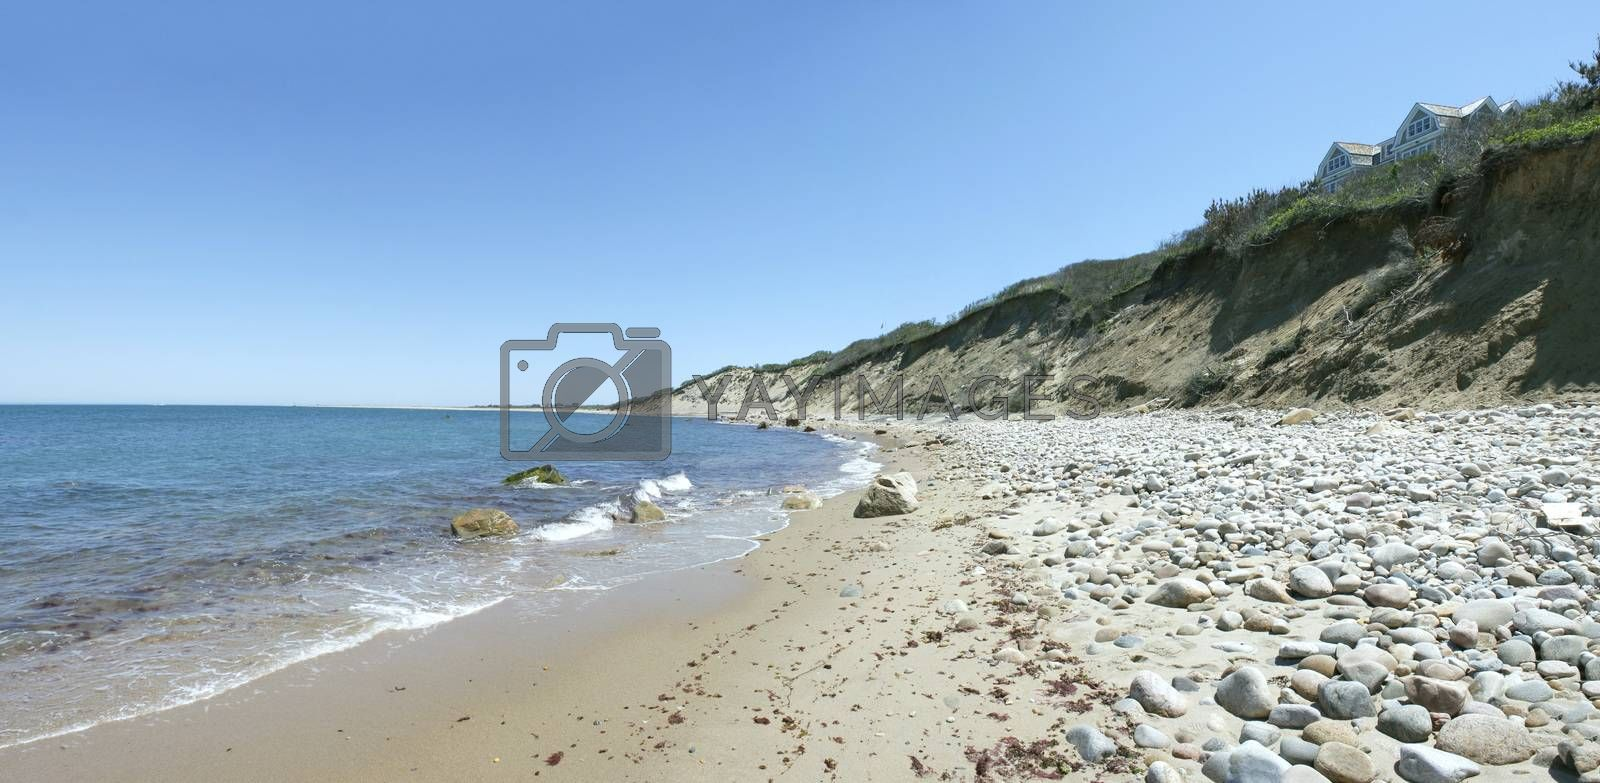 View of the dunes and coast Block Island located in the state of Rhode Island USA.